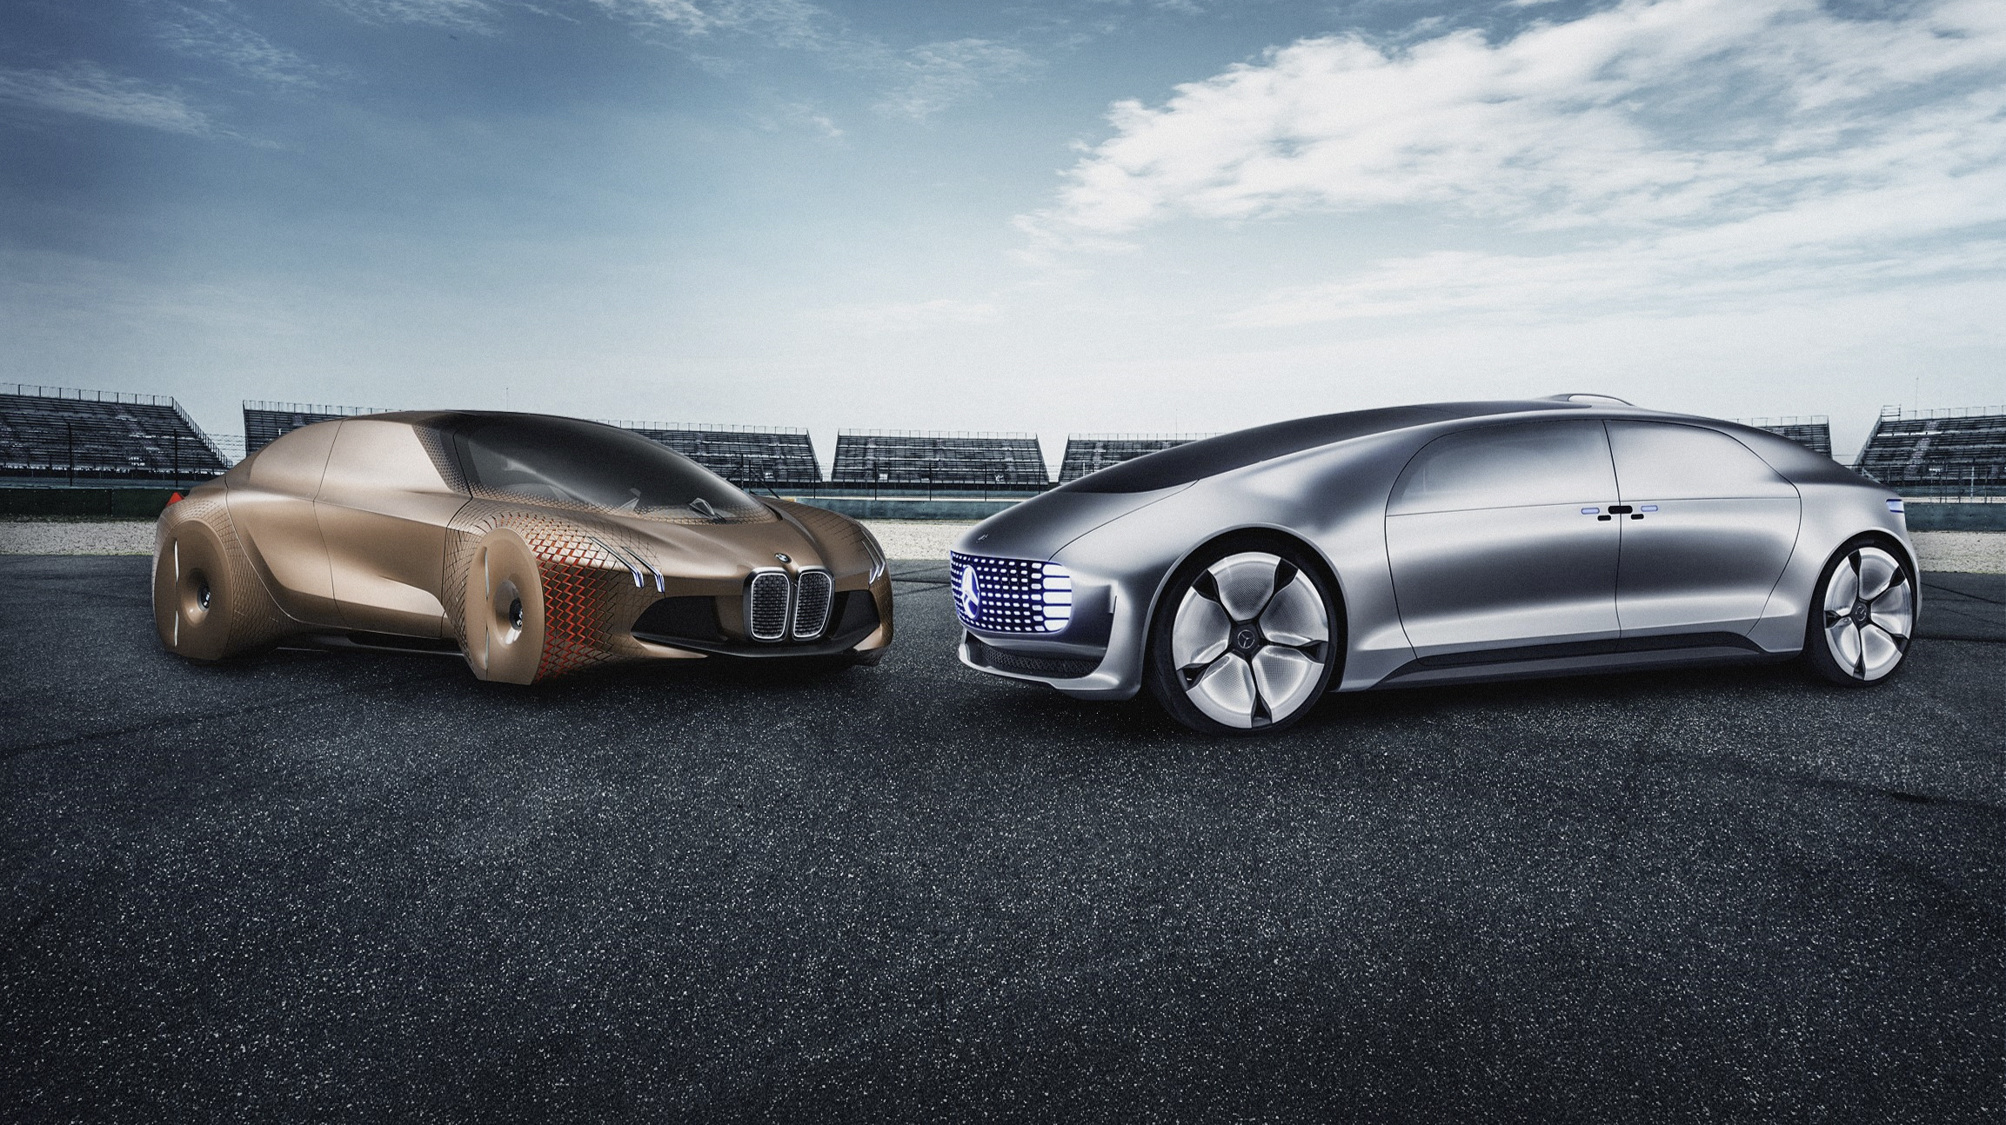 Daimler AG a BMW Group